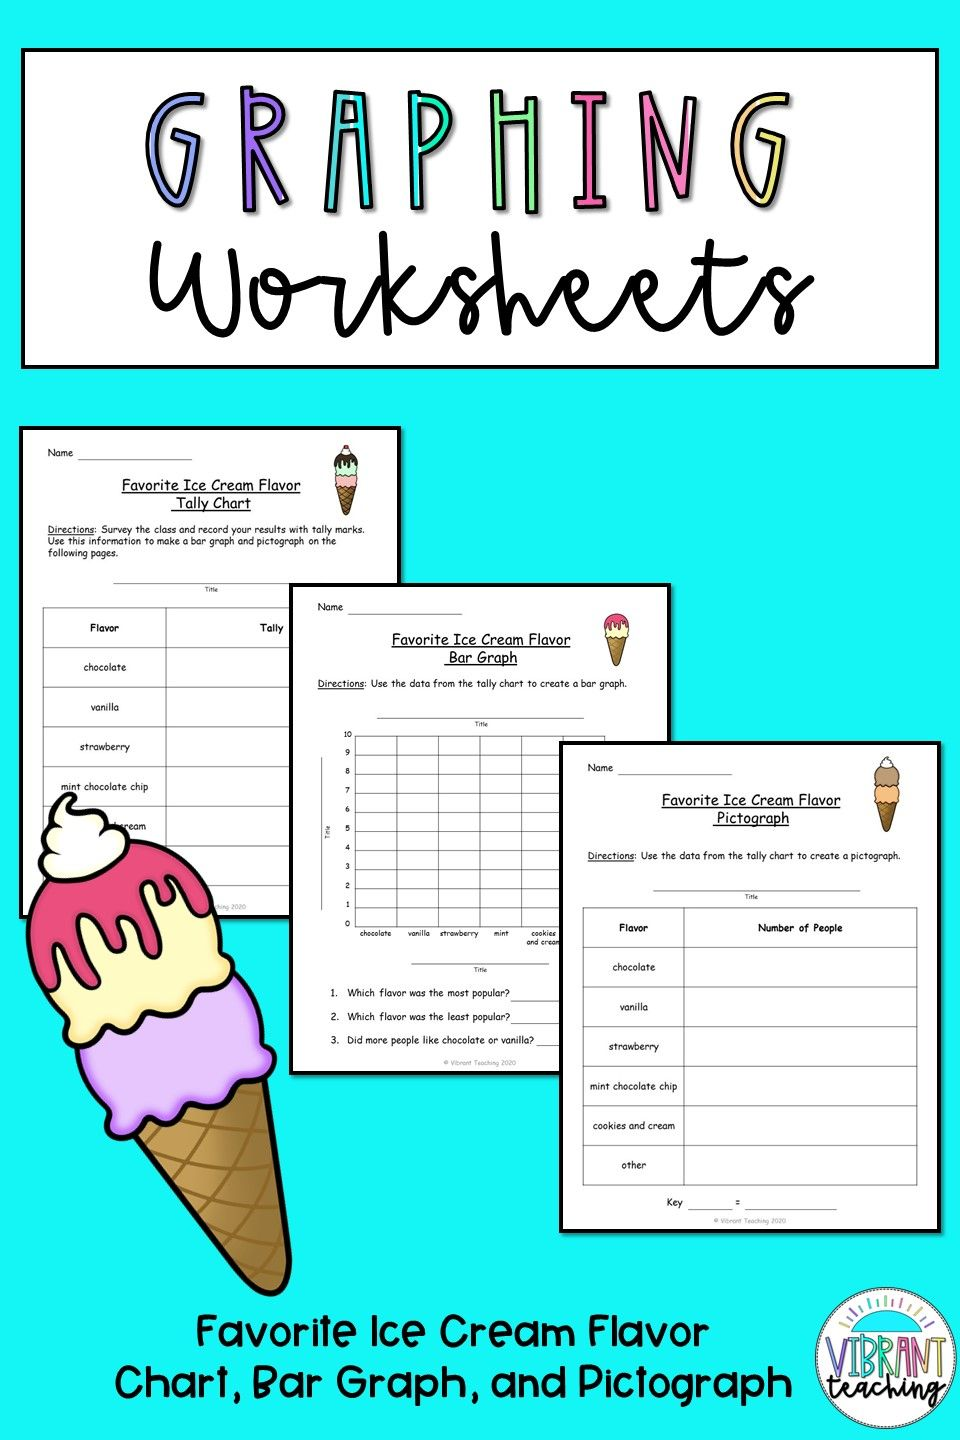 Graphing Worksheets: Favorite Ice Cream Flavor   Graphing worksheets [ 1440 x 960 Pixel ]